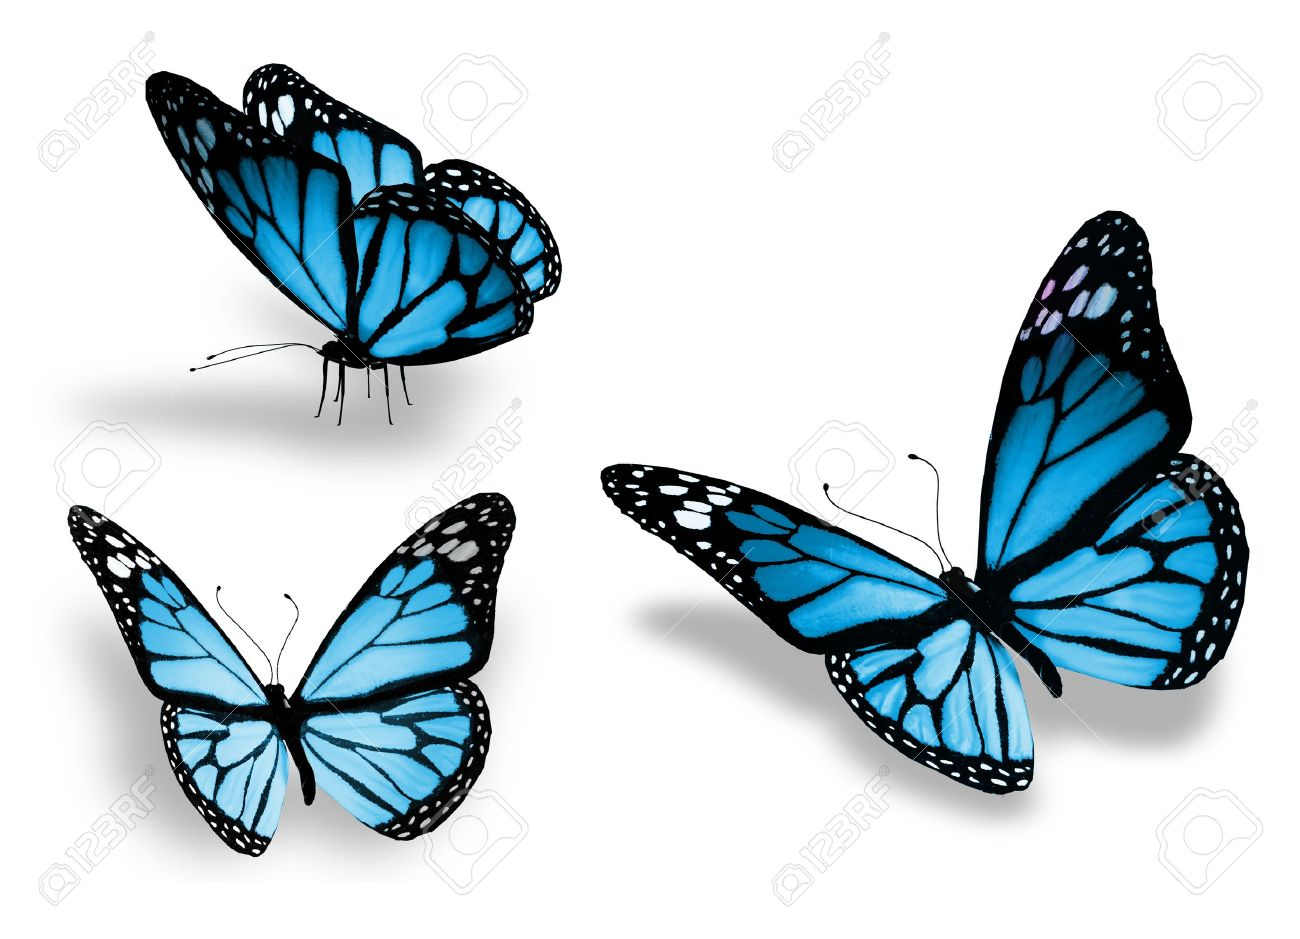 Image result for blue butterflies